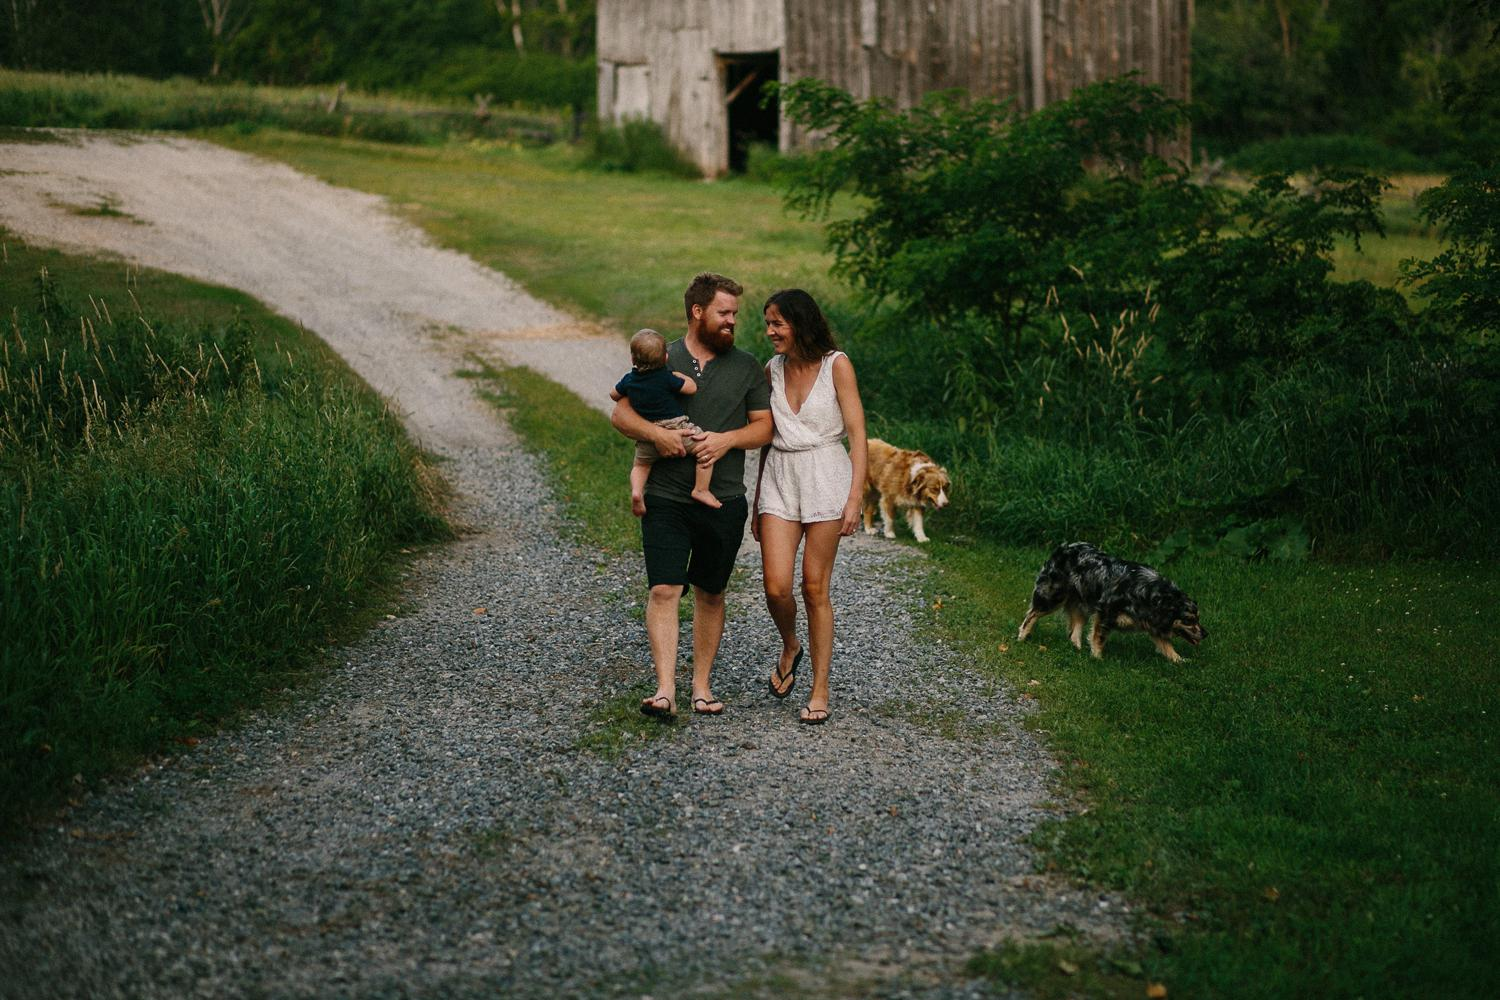 lanark highlands farm family photo session - kerry ford photography-002.jpg